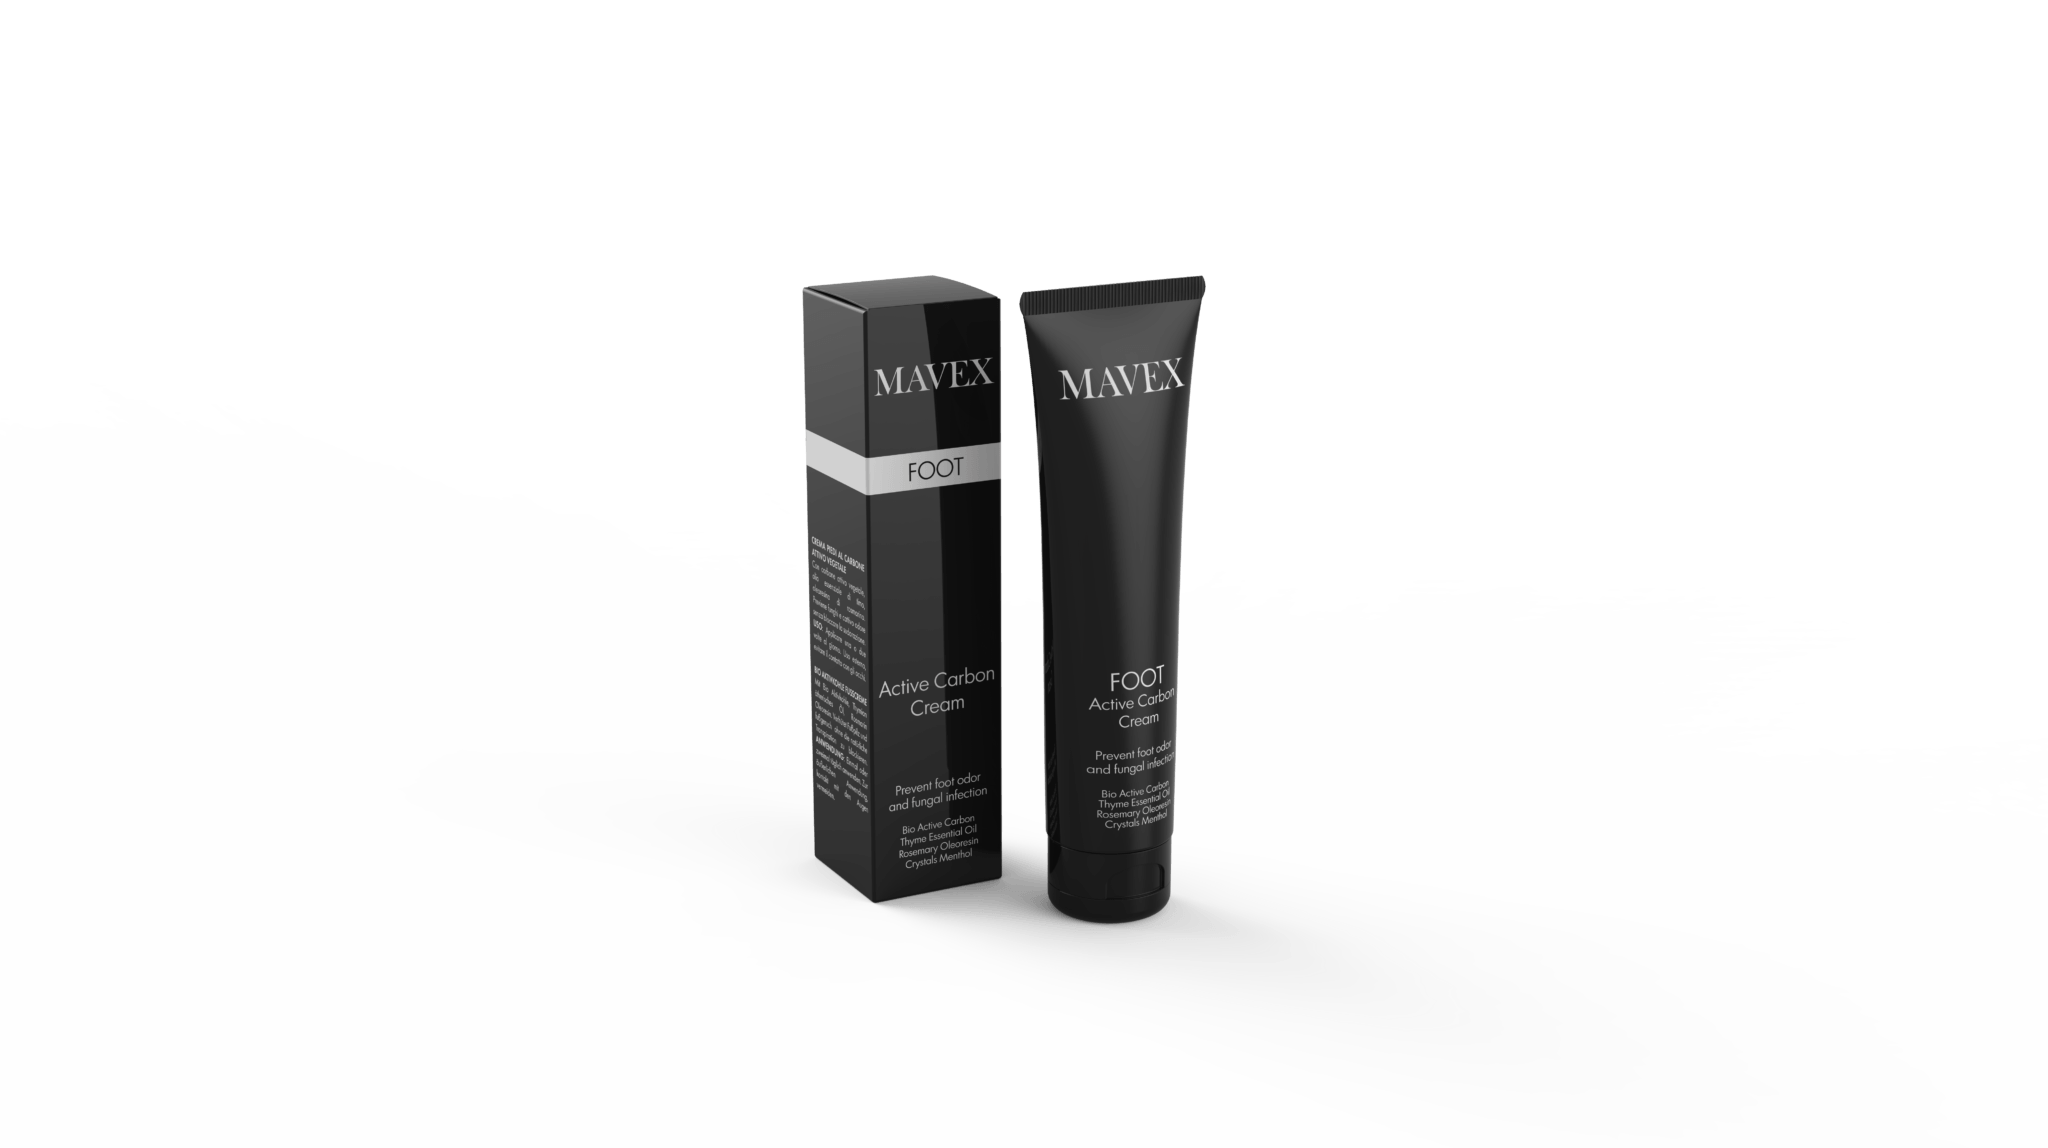 mavex foot daily cream carbon active